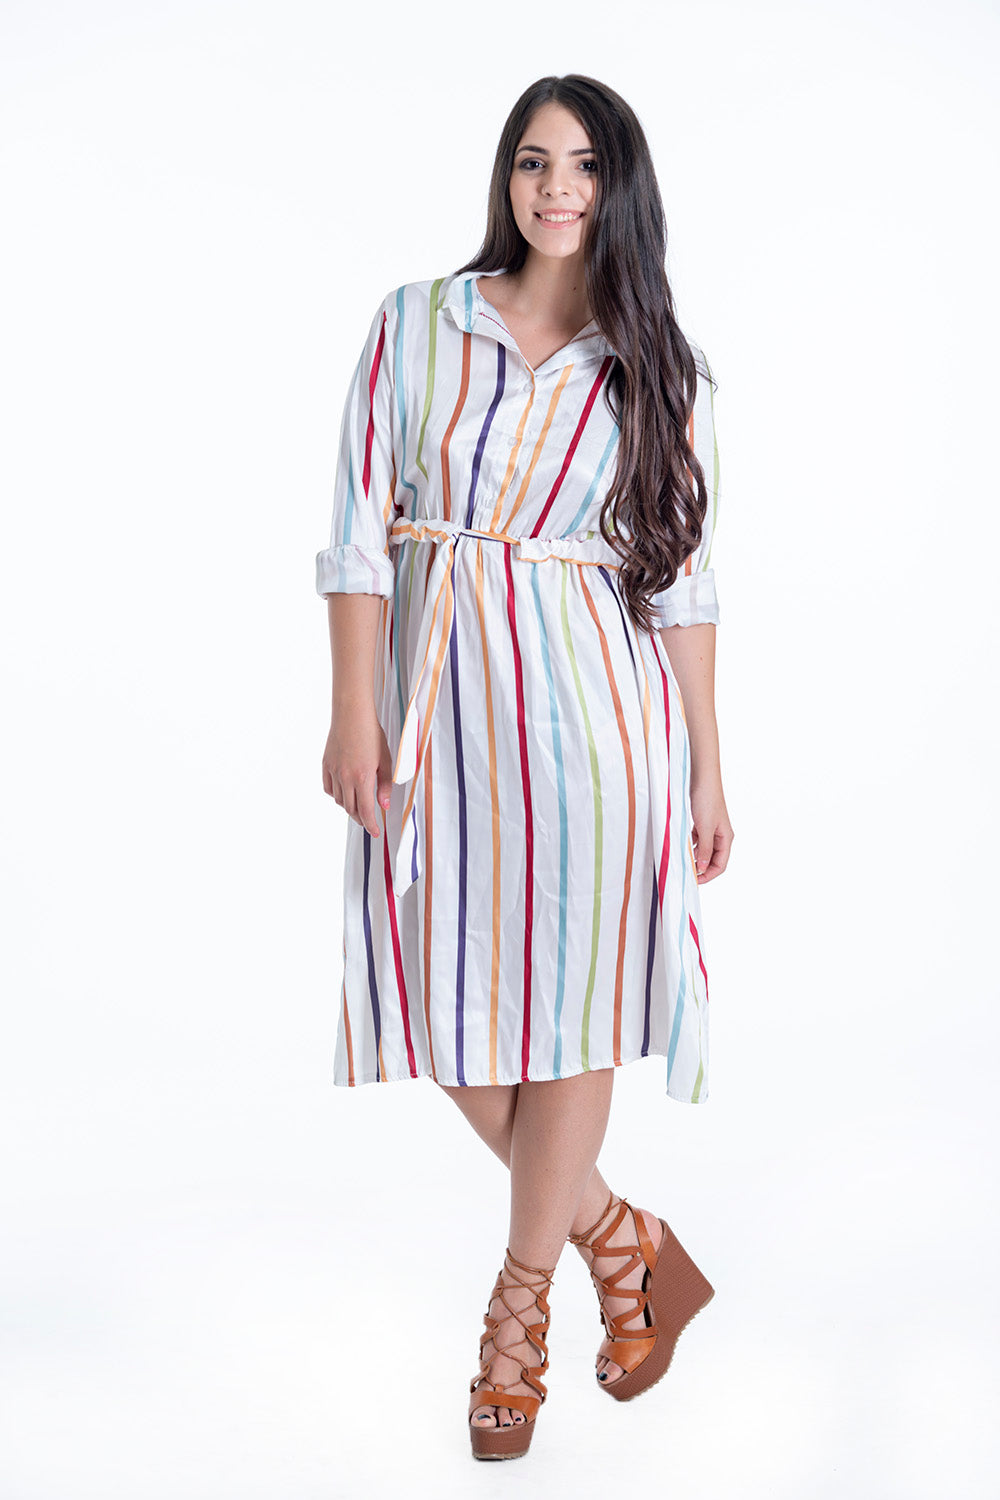 Soft shirt dress with colourful stripes